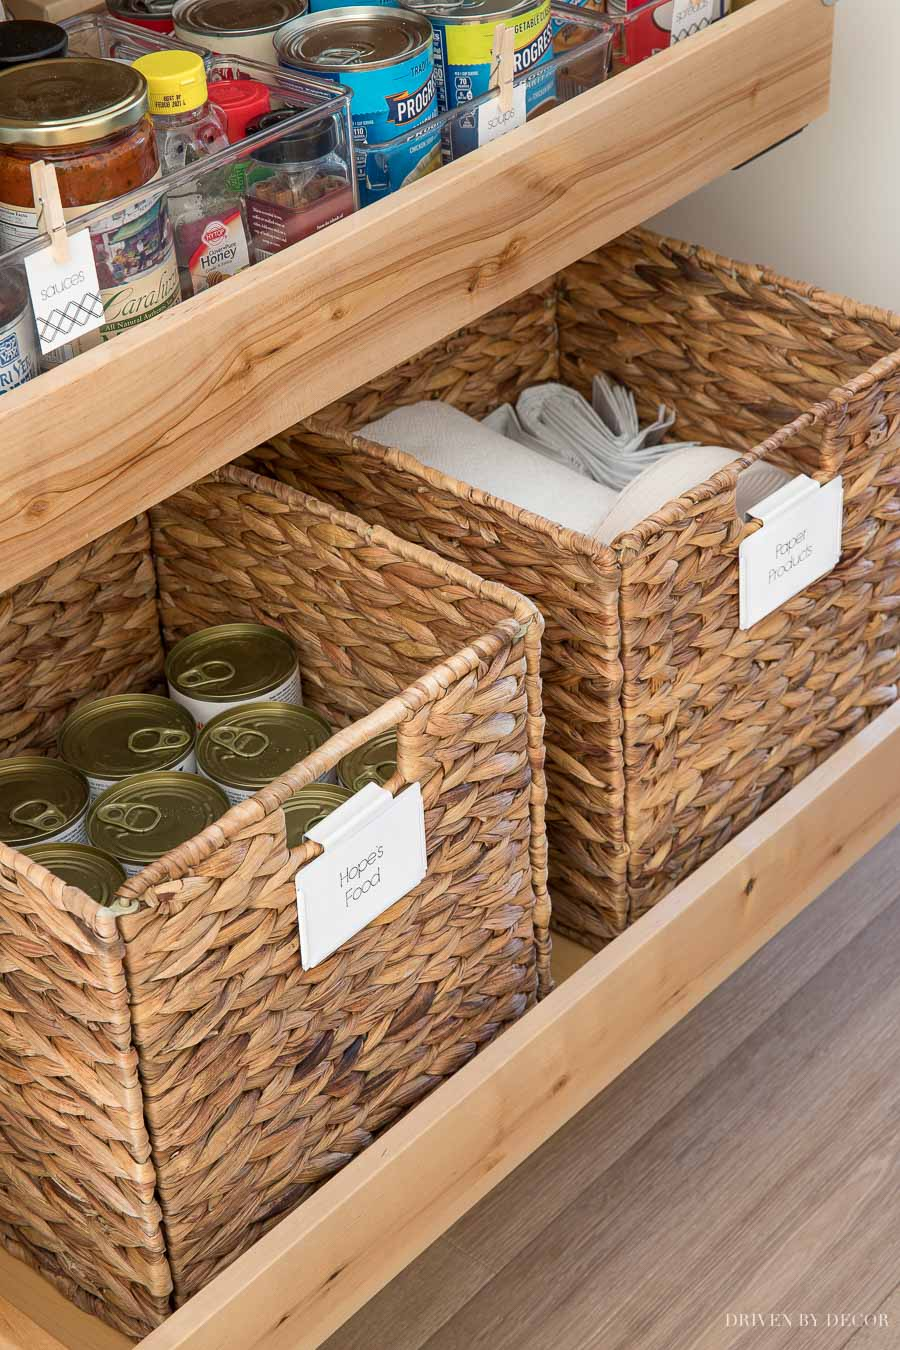 The woven baskets are awesome for storage of canned food and paper products in our pantry!